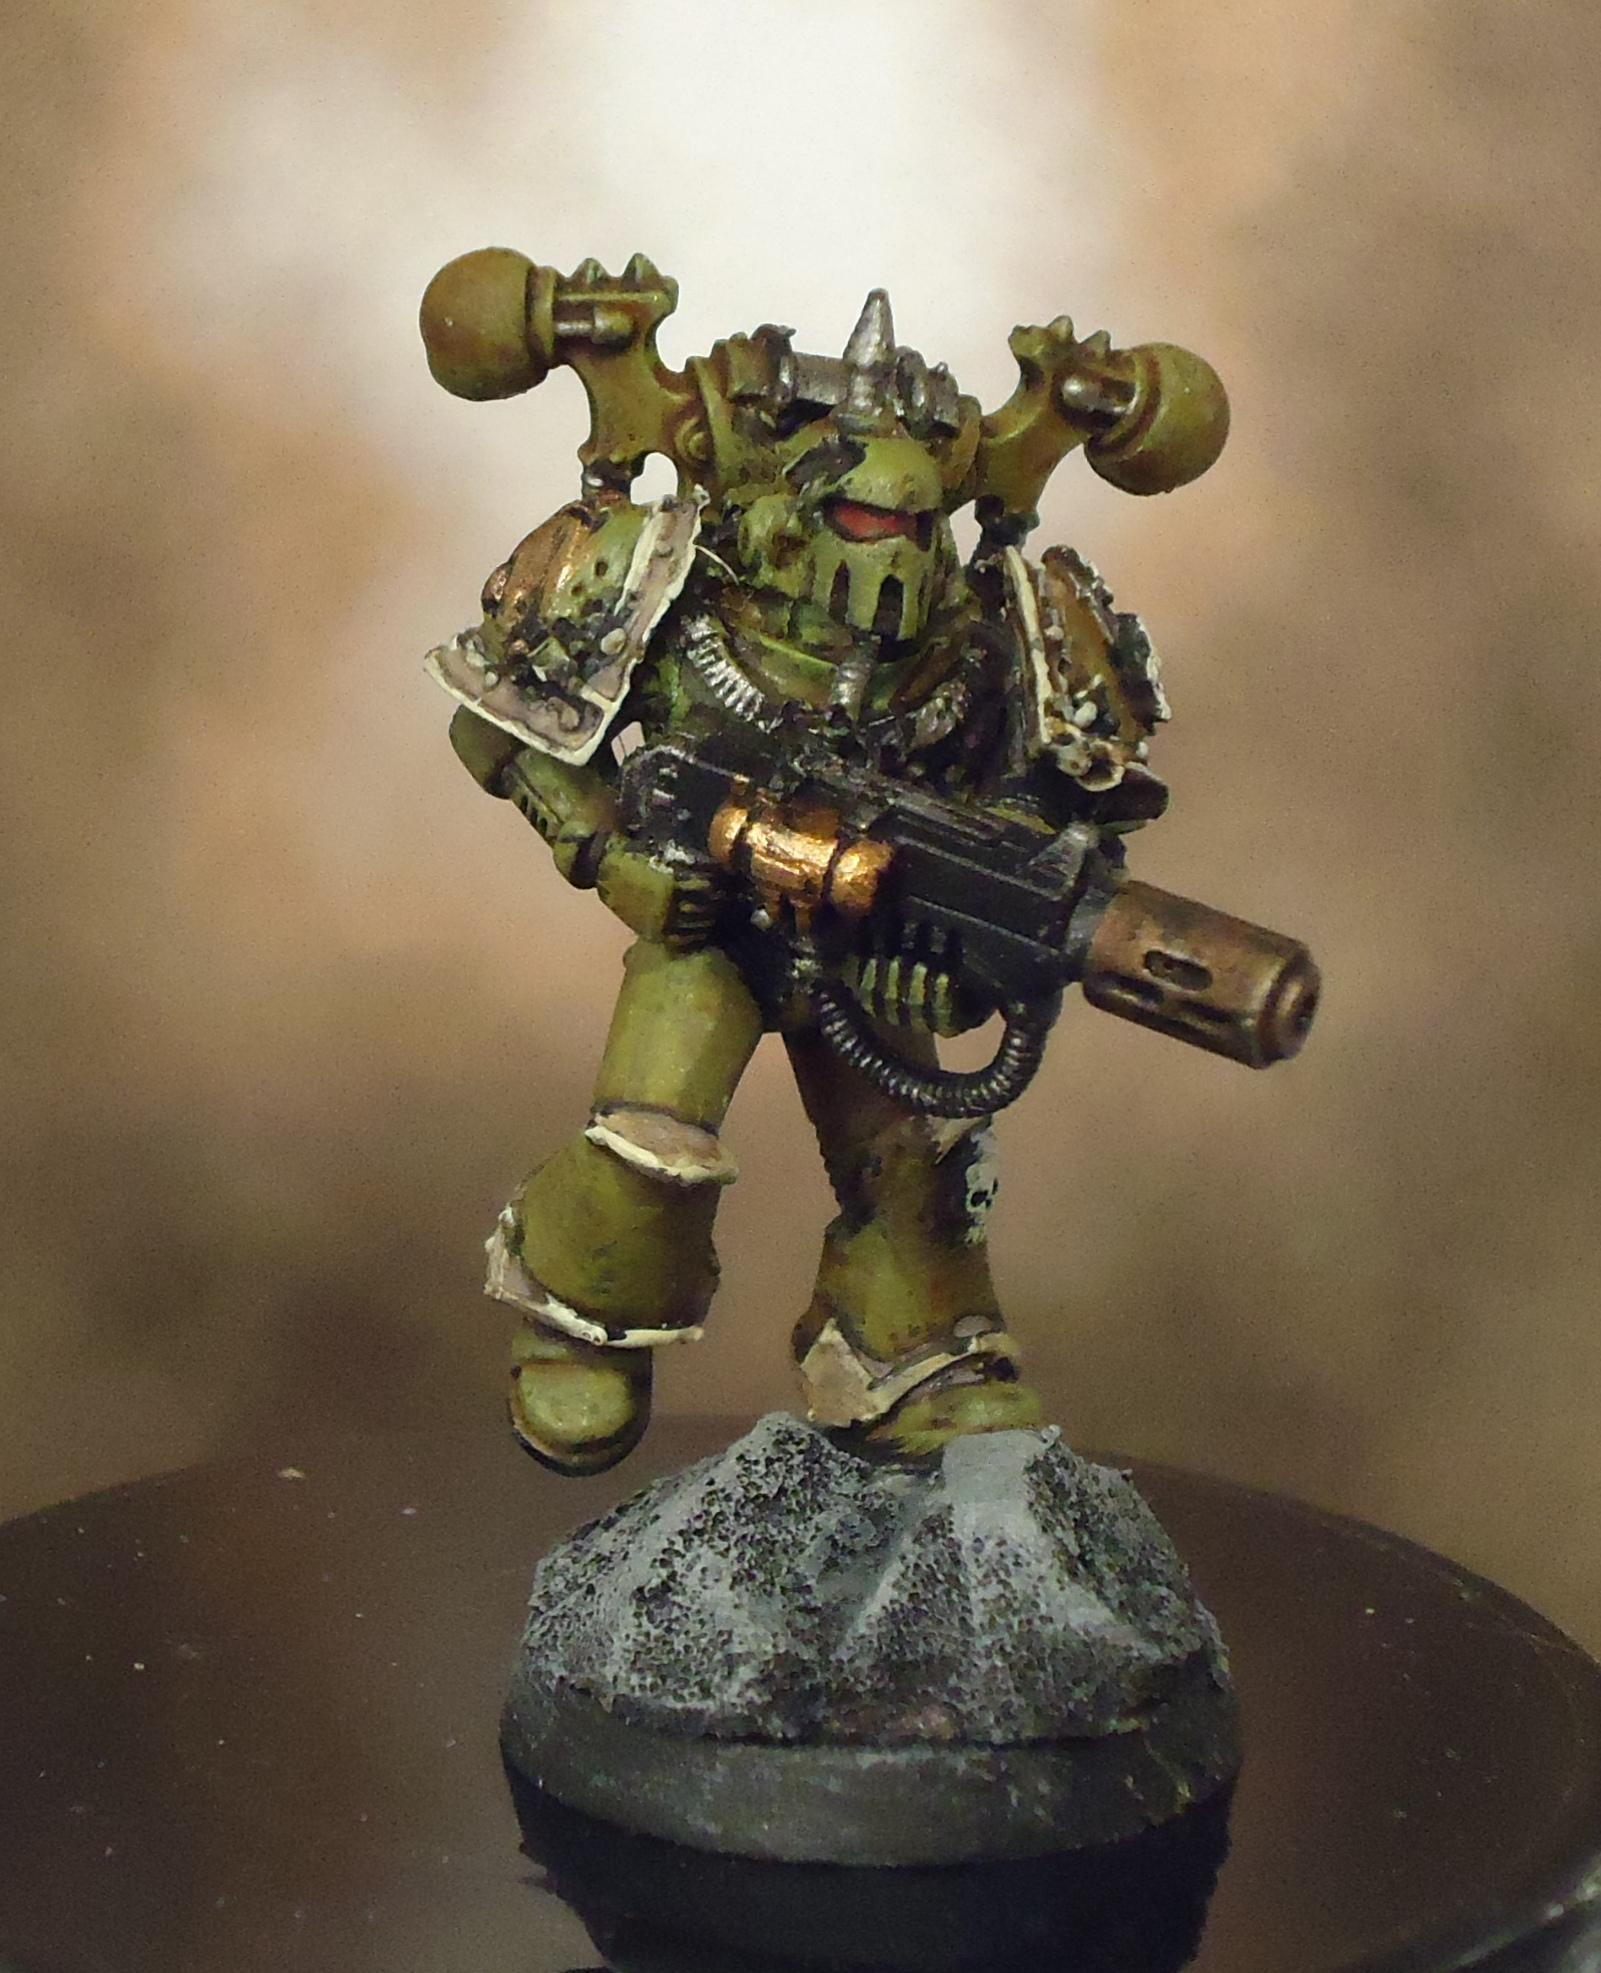 Chaos Space Marines, Death Guard, Decay, Forge World, Meltagun, Nurgle, Plague Marines, Rot, Warhammer 40,000